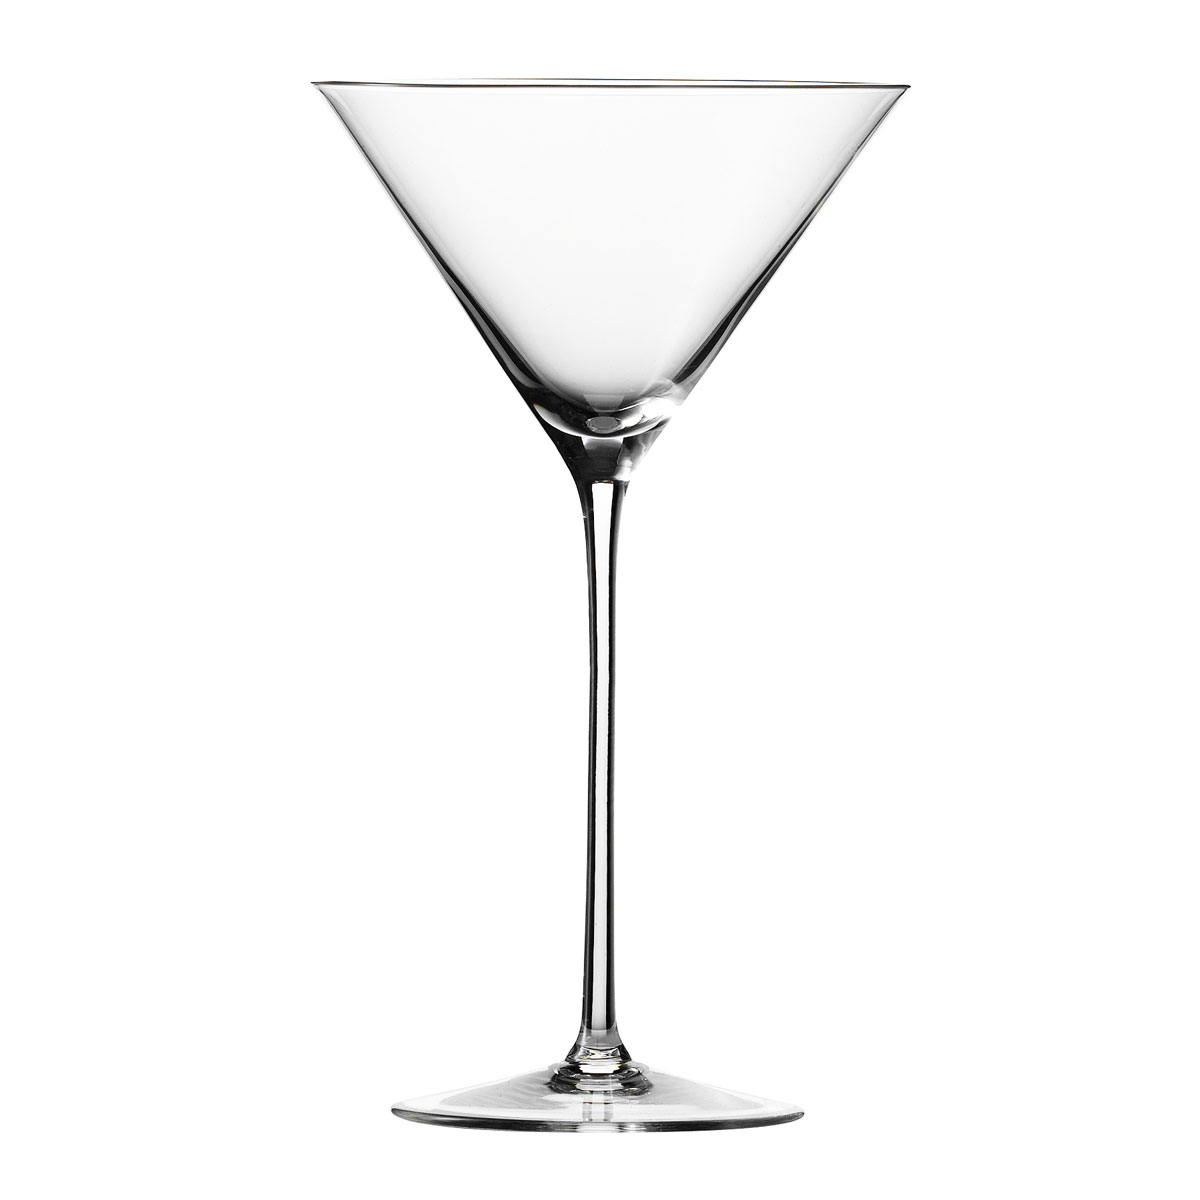 Schott Zwiesel Tritan Crystal, 1872 Enoteca Crystal Martini, Single